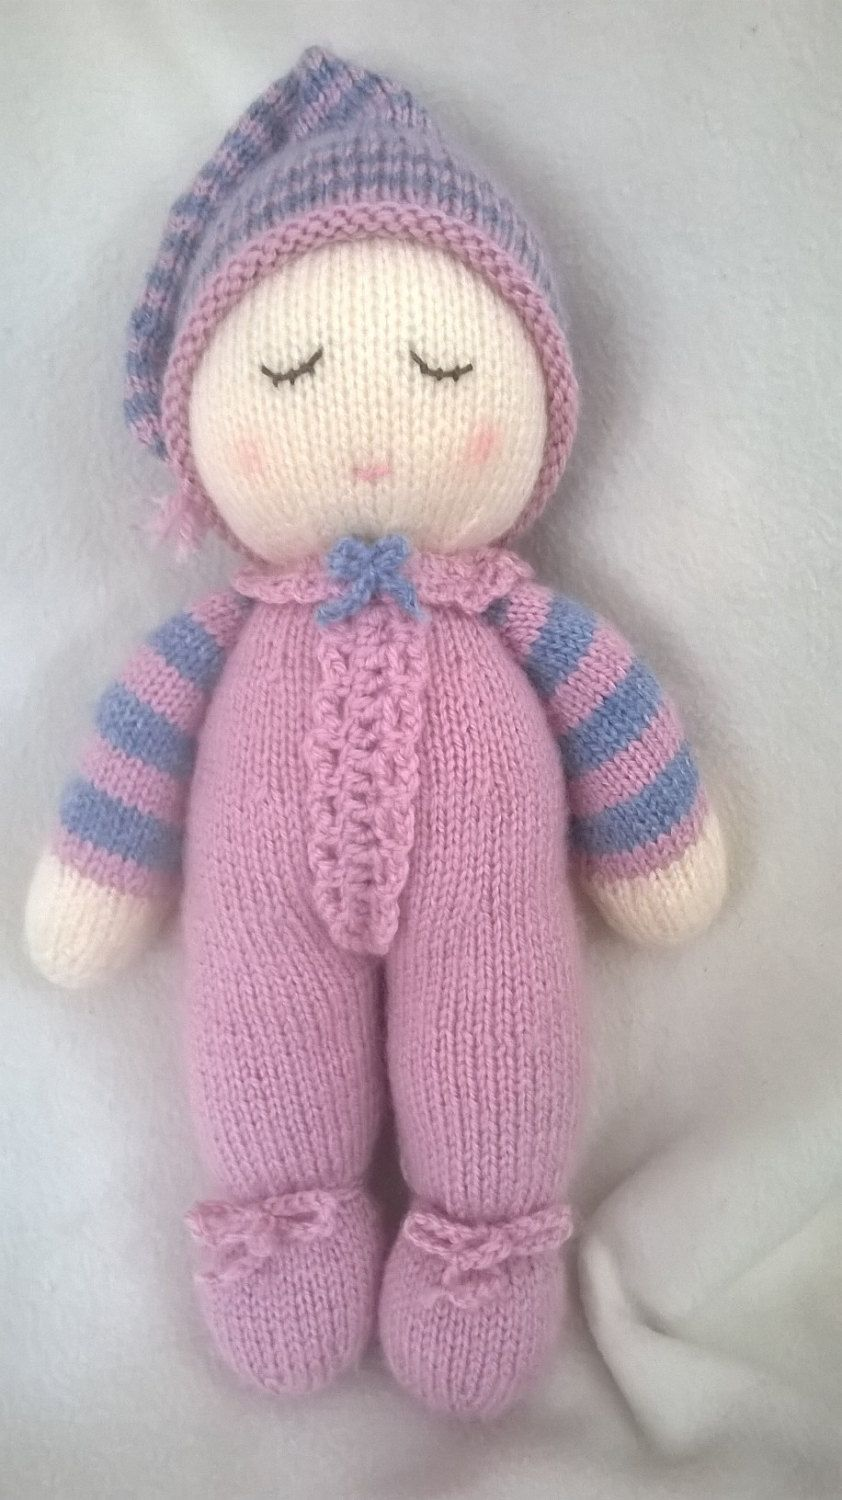 Hand knitted baby dumpling doll by dreamdollies on etsy hand knitted baby dumpling doll by dreamdollies on etsy bankloansurffo Choice Image